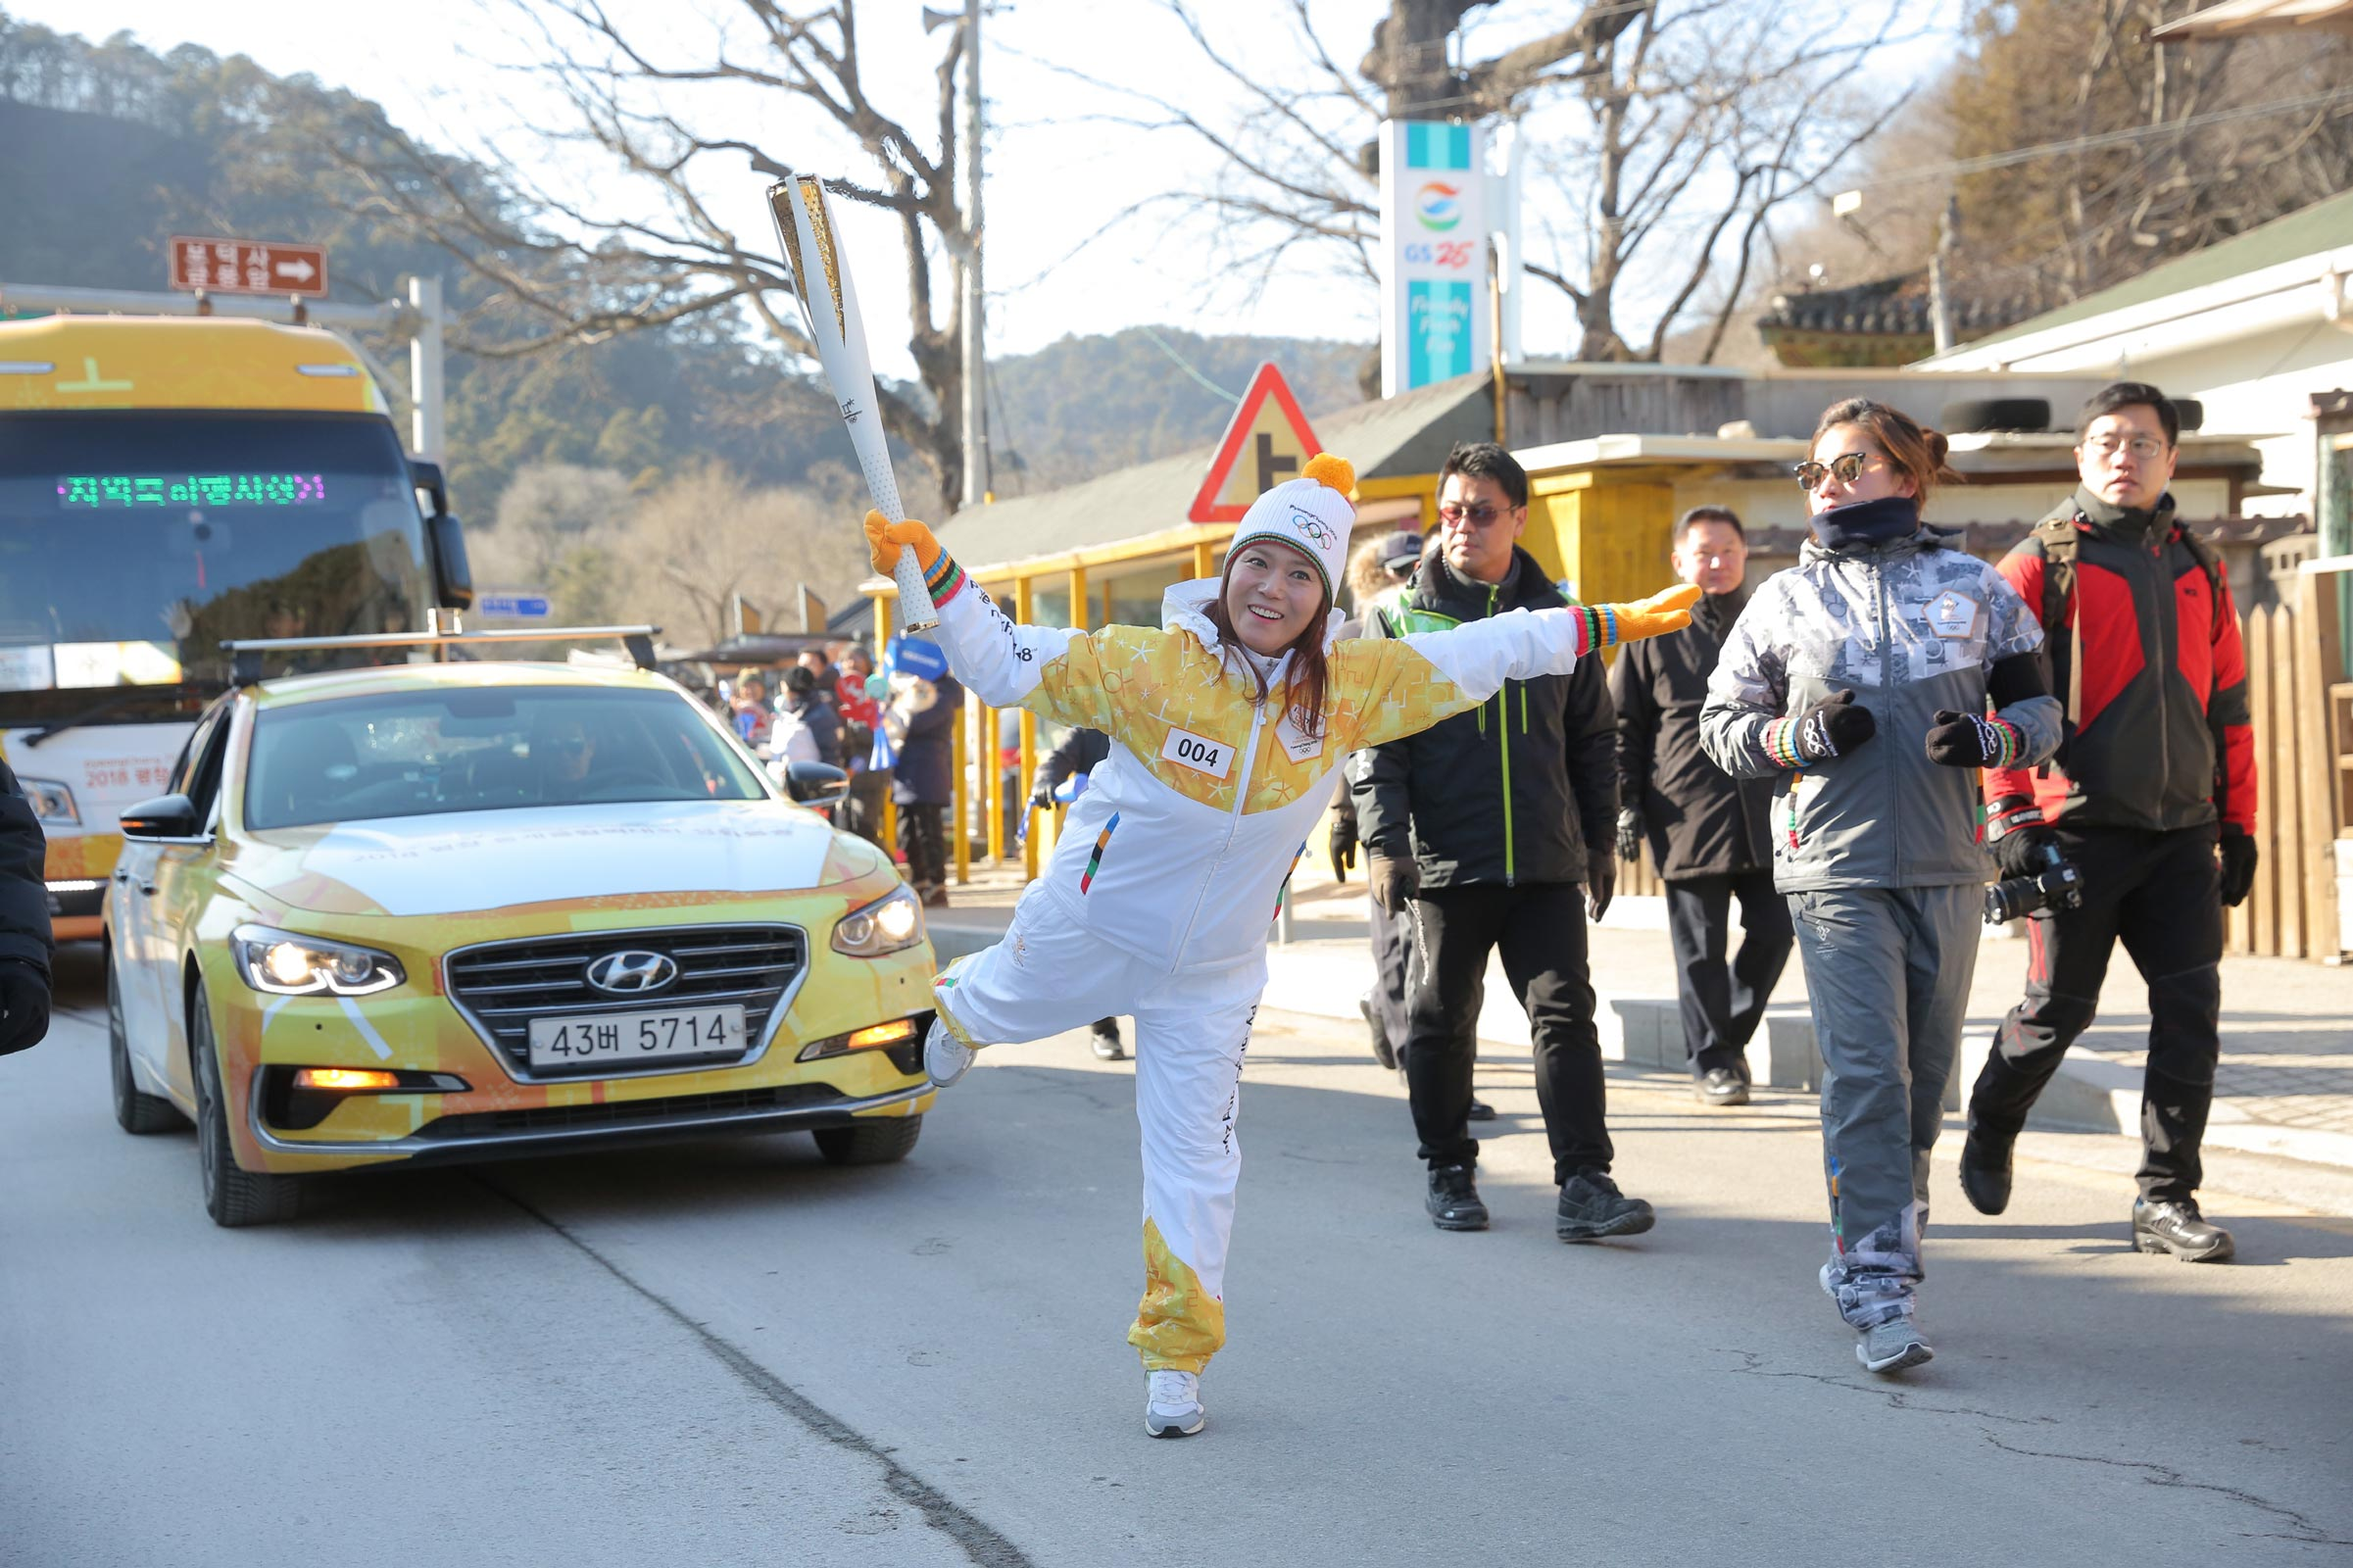 PyeongChang 2018 Olympic Torch Relay - Day 95